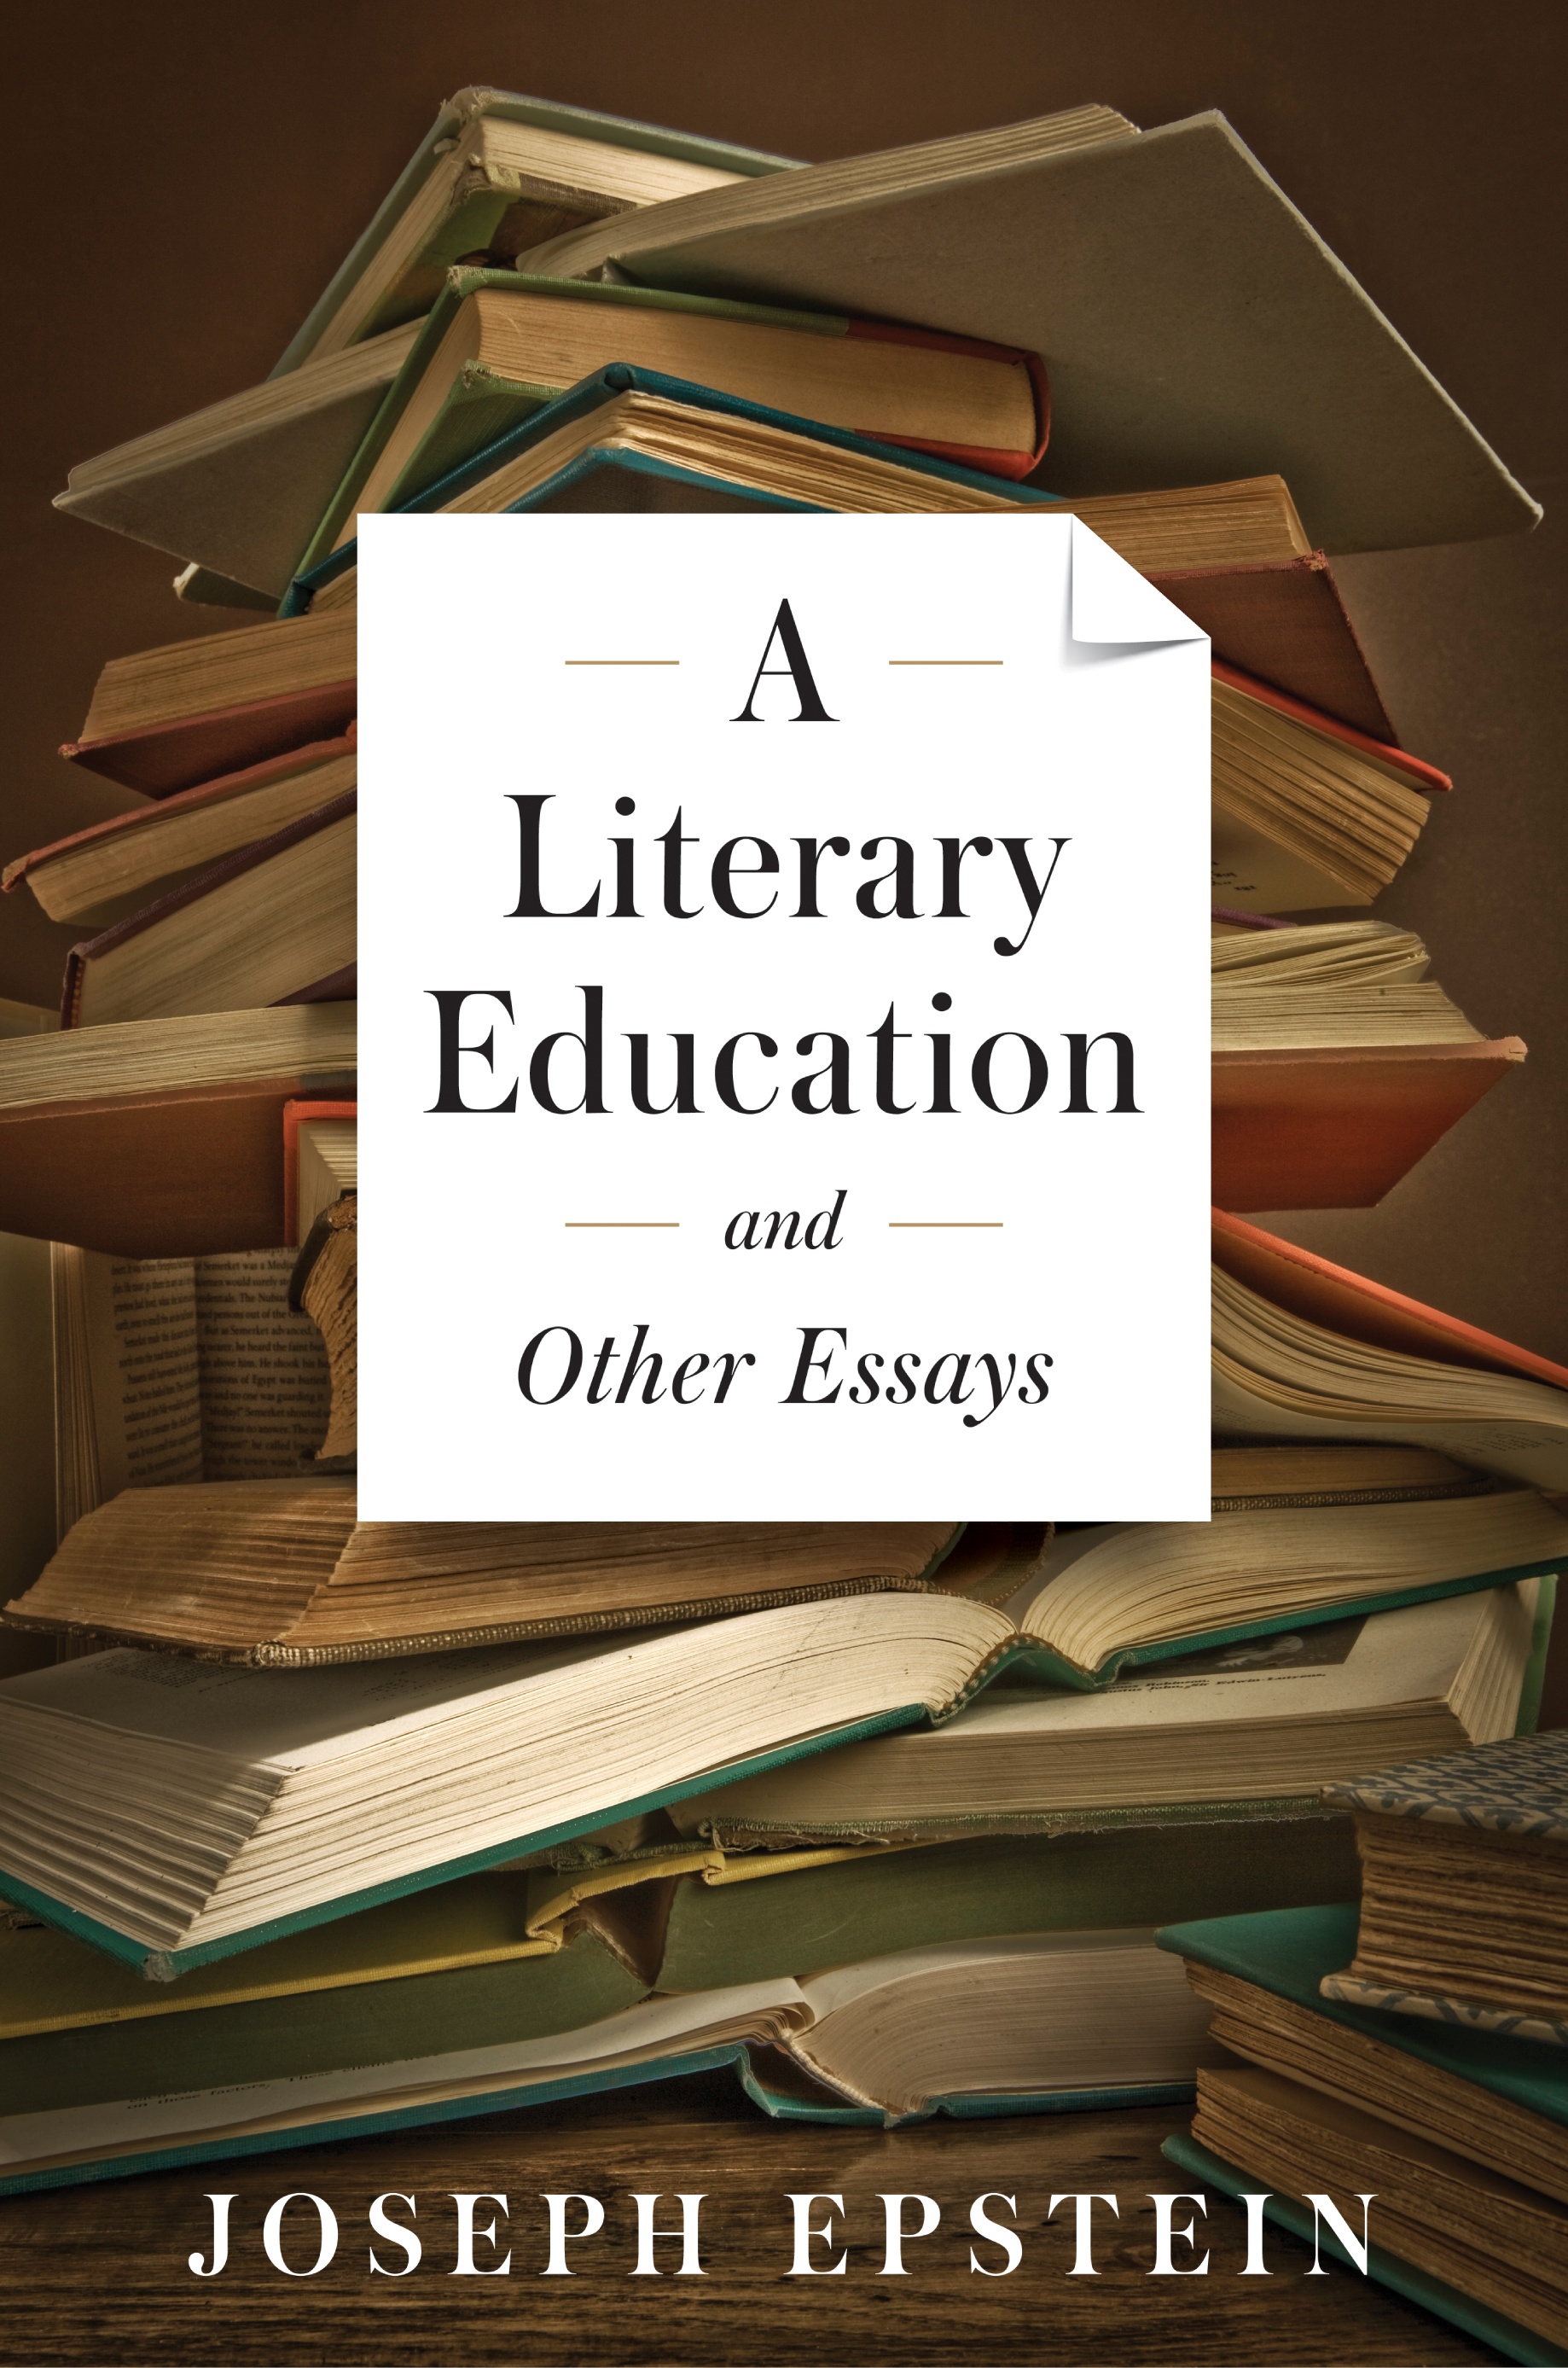 a literary education and other essays axios press front cover jpg